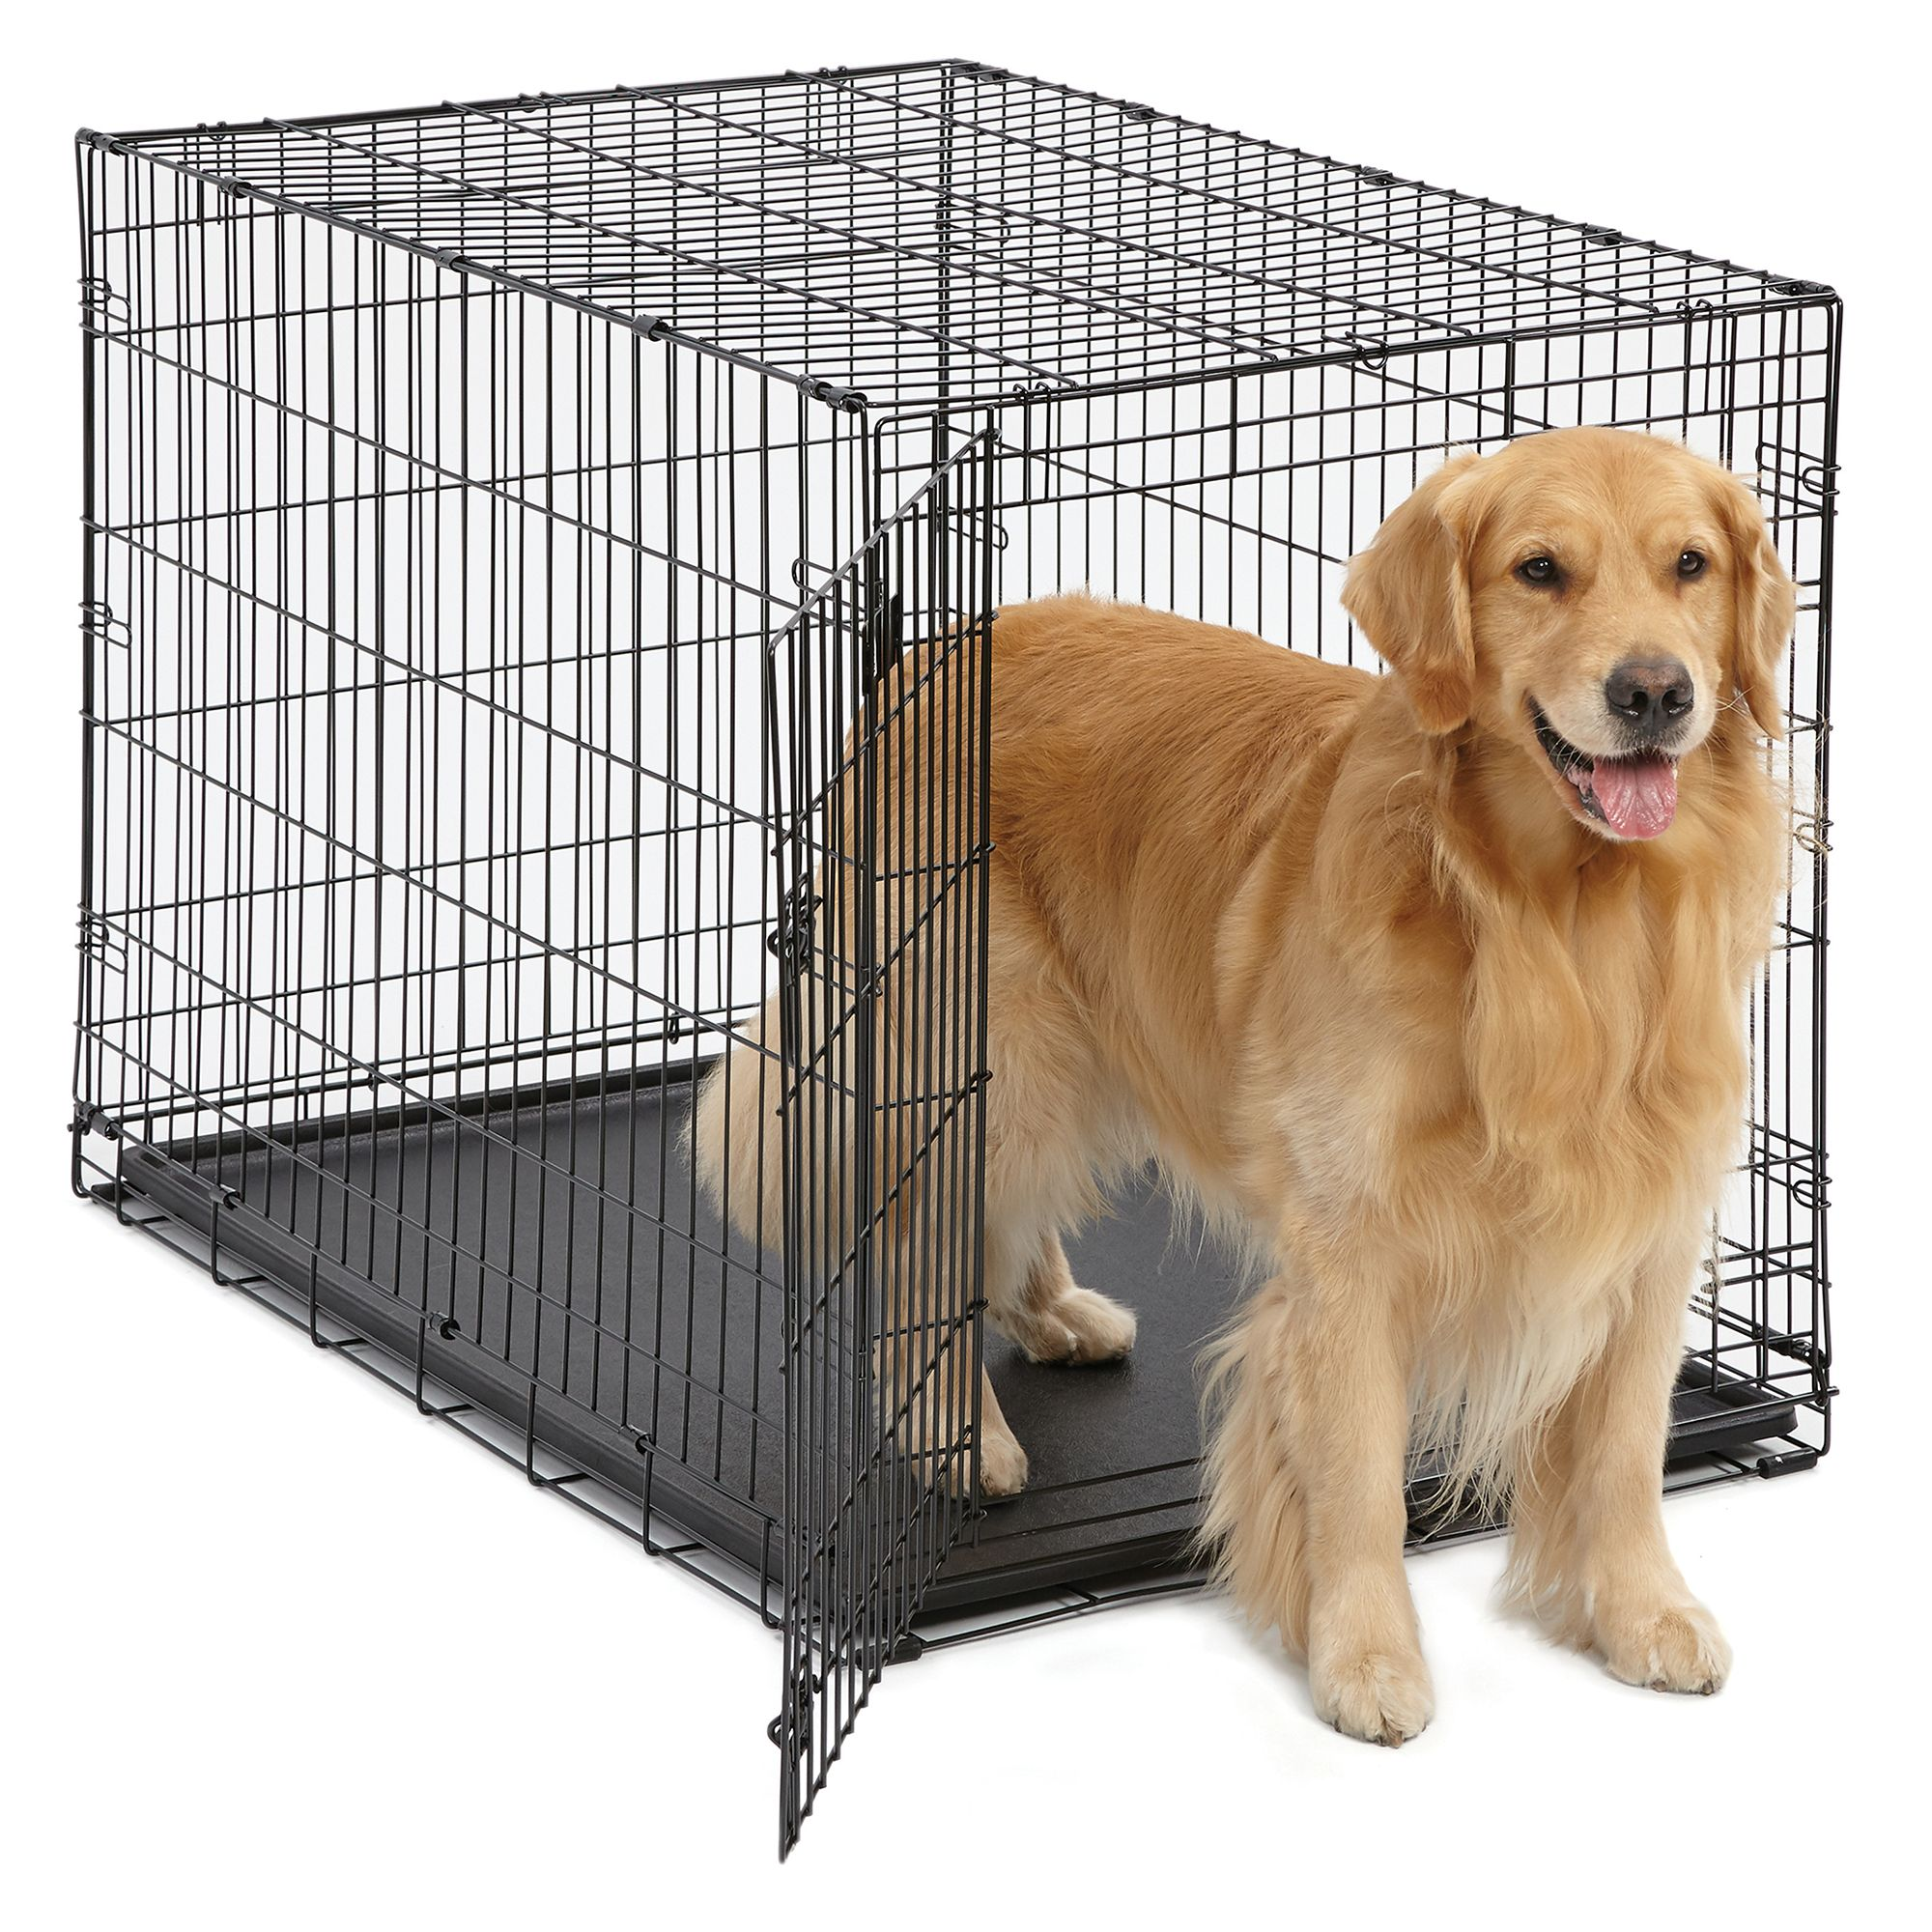 Midwest Icrate Dog Crate Dog Carriers Crates Petsmart